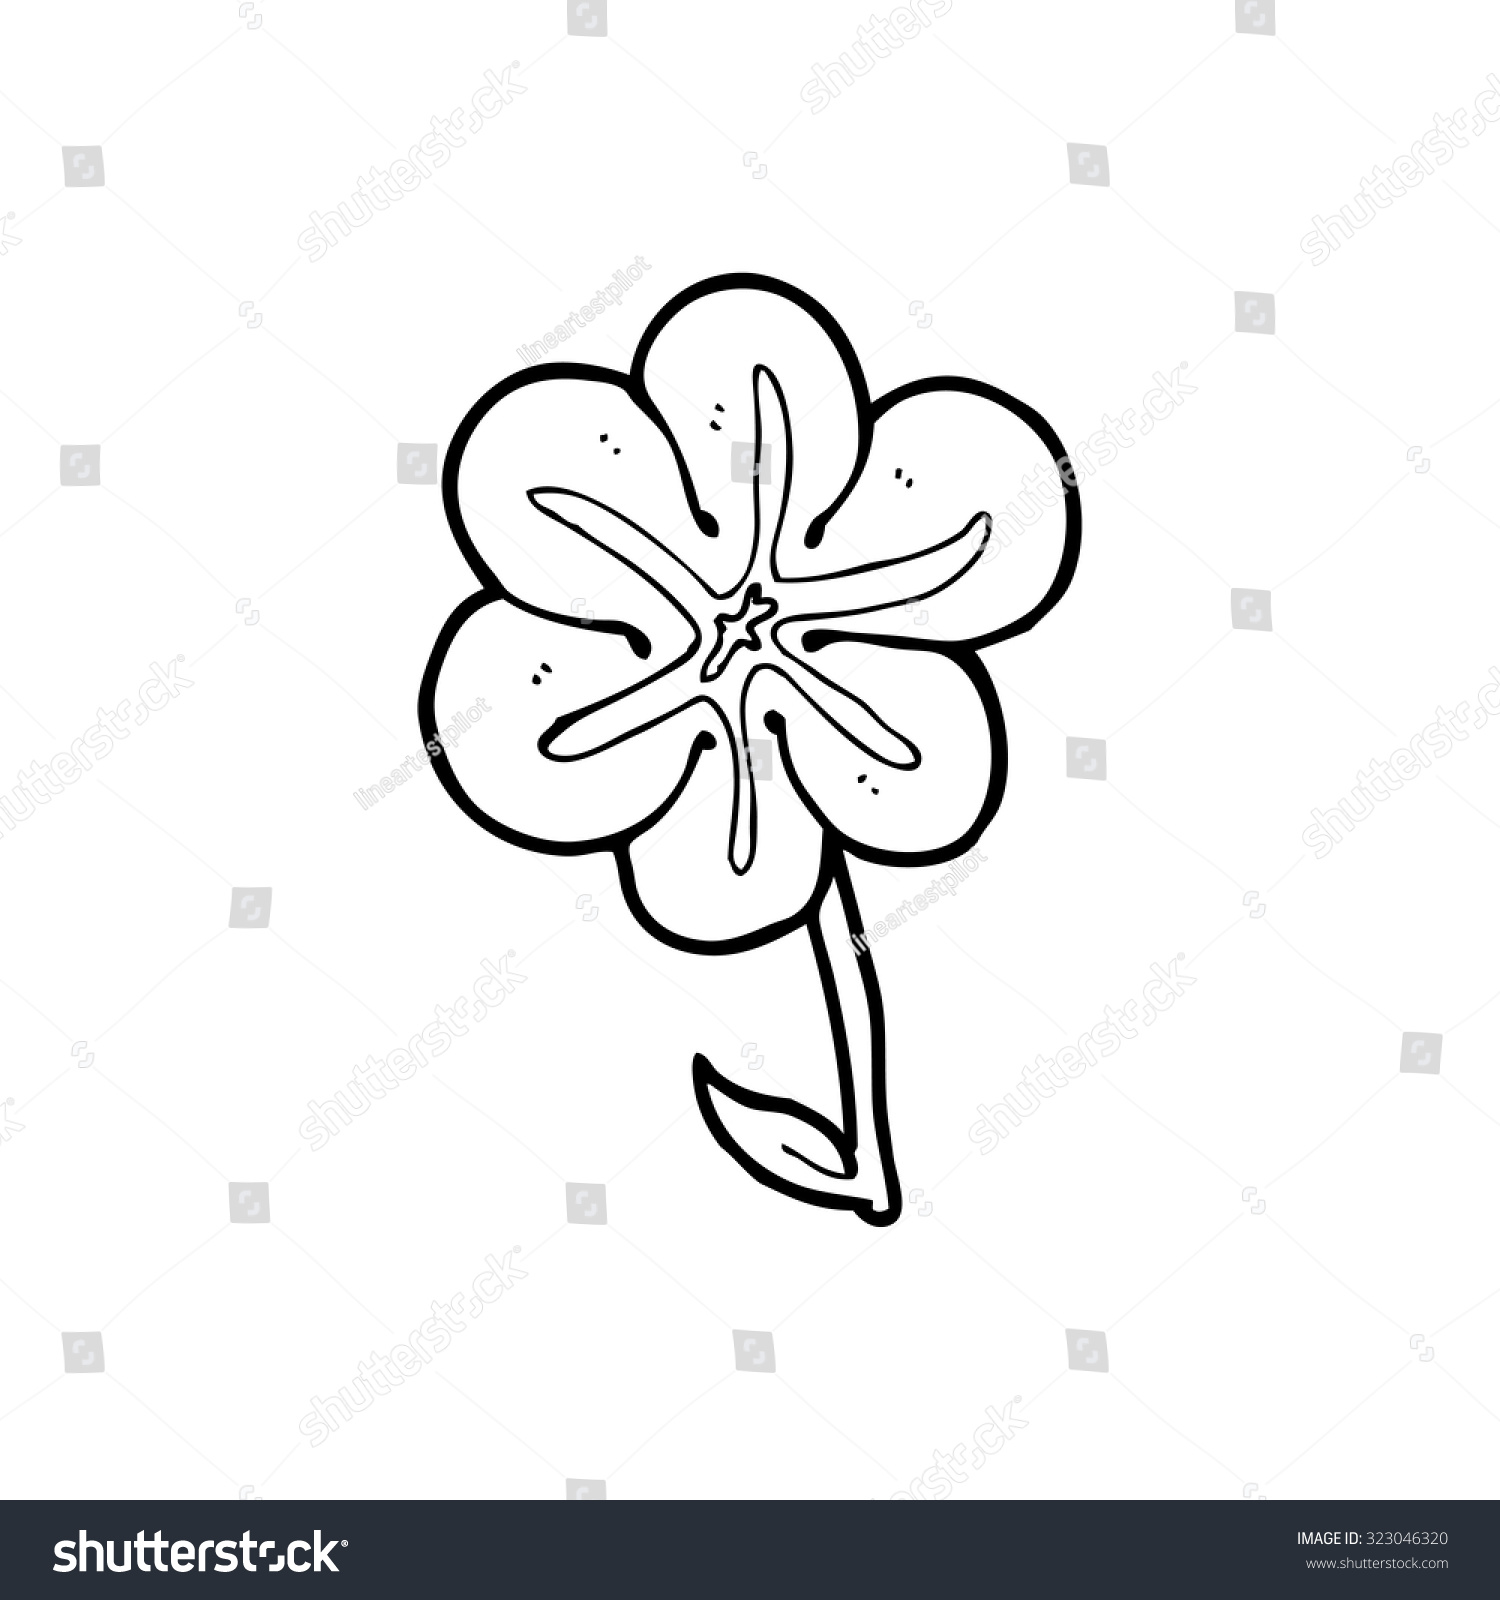 Cartoon Flower Line Drawing : Cartoon flowers black and white simple